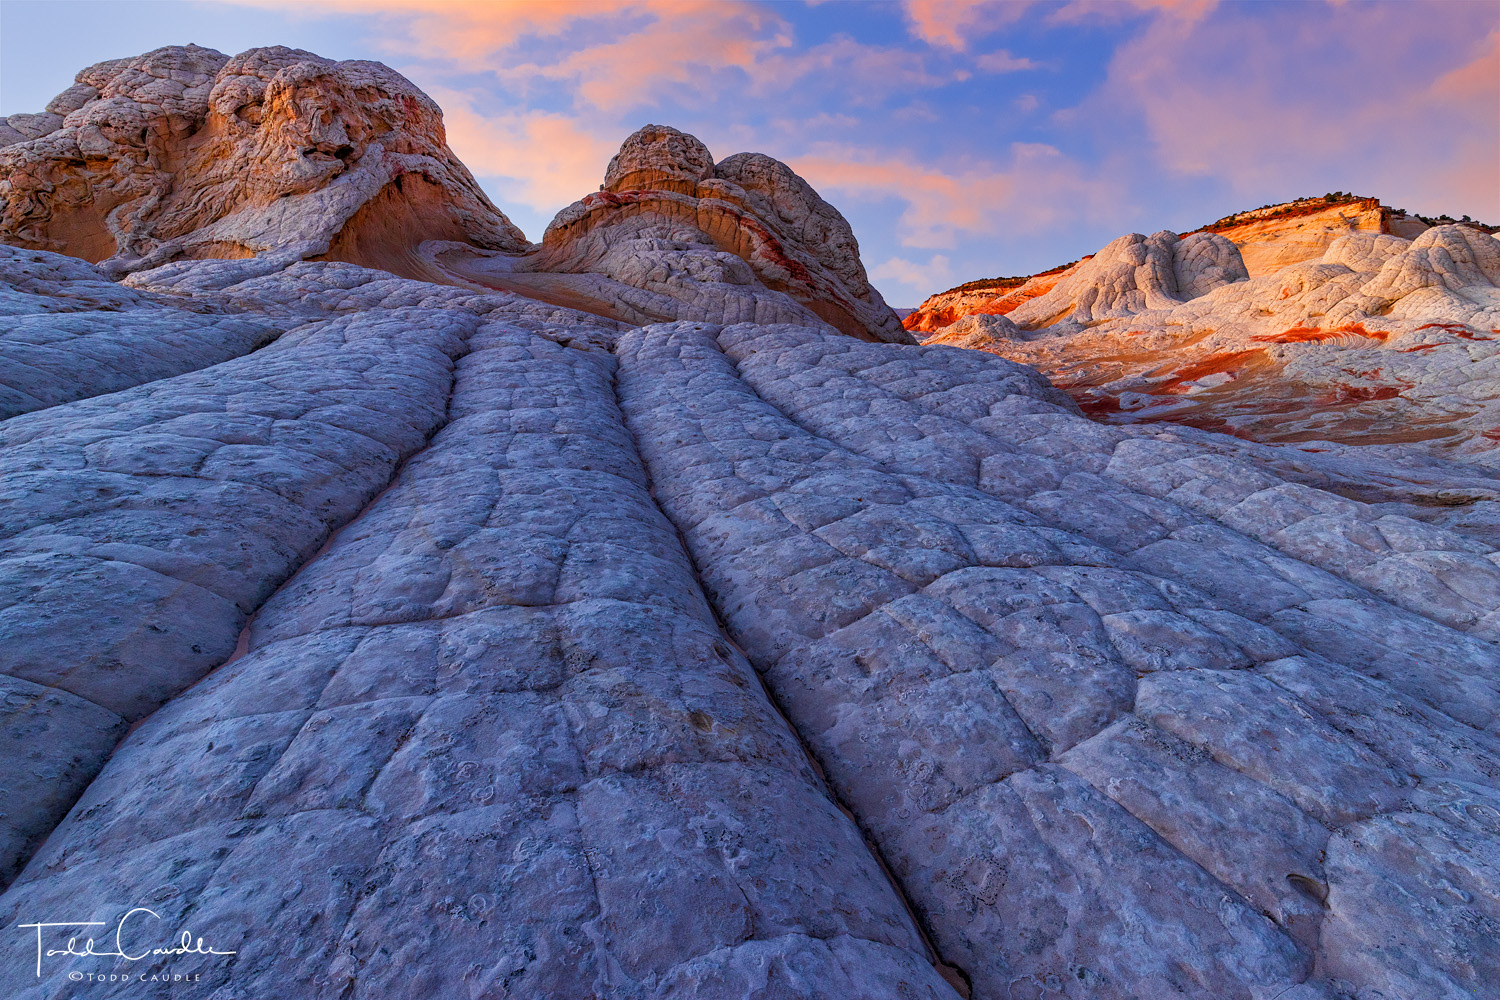 Northern Arizona boasts several locations of geologic beauty, and White Pocket is one of its most fascinating. Accessed by a...